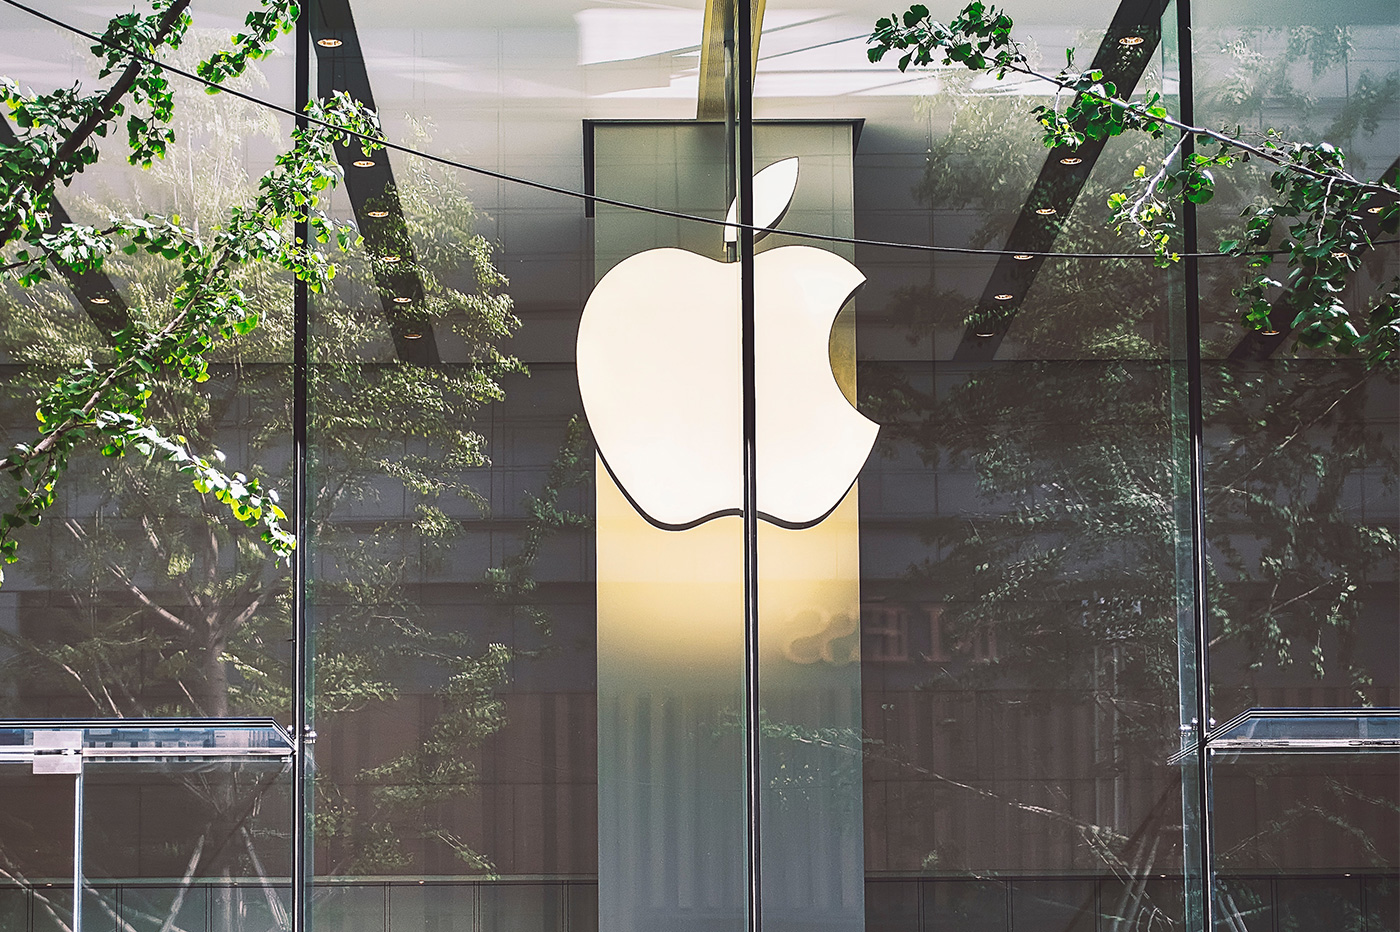 Un étudiant traine en justice Apple, et réclame 1 milliard de dollars